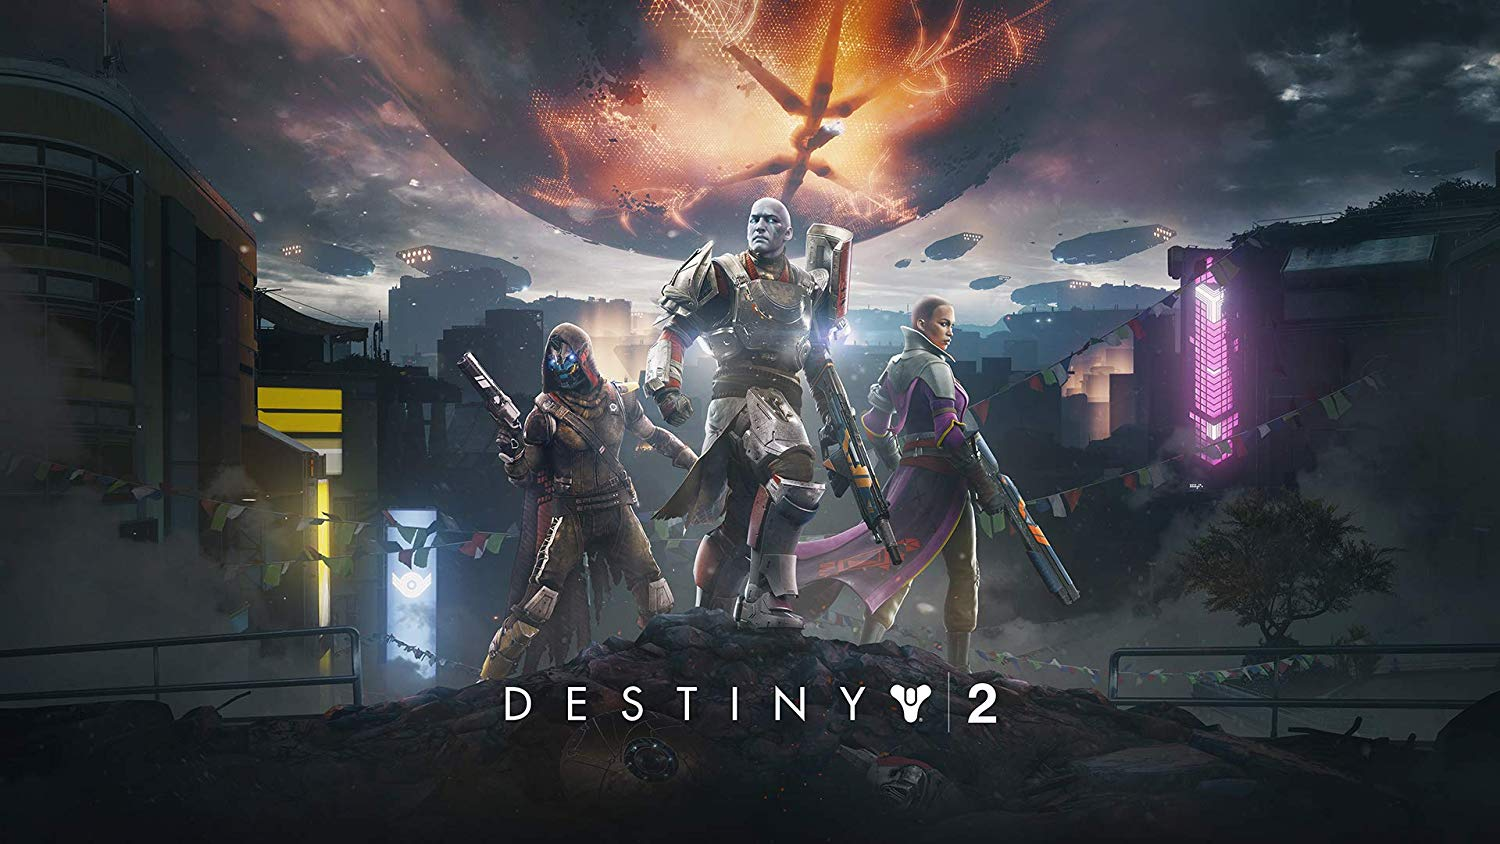 Destiny 2 video game cover